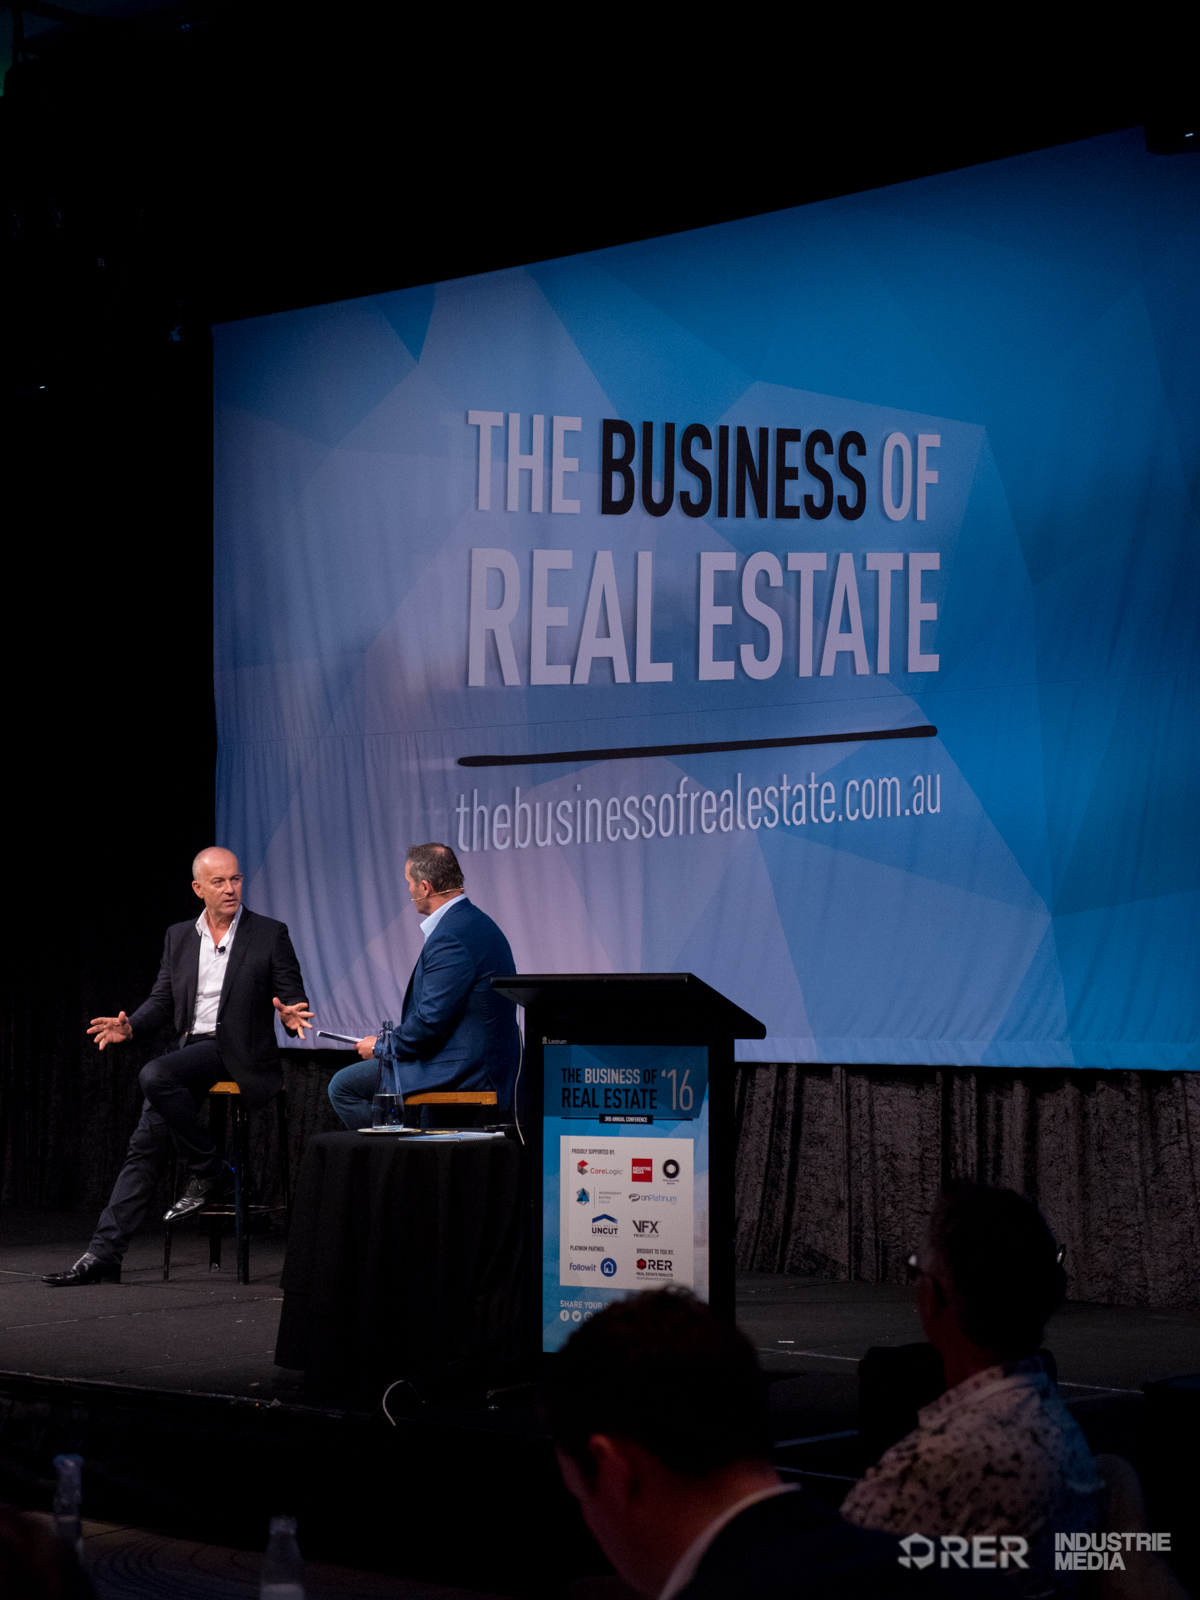 http://www.thebusinessofrealestate.com.au/wp-content/uploads/2016/09/RER_BUSINESS_OF_REAL_ESTATE-79.jpg